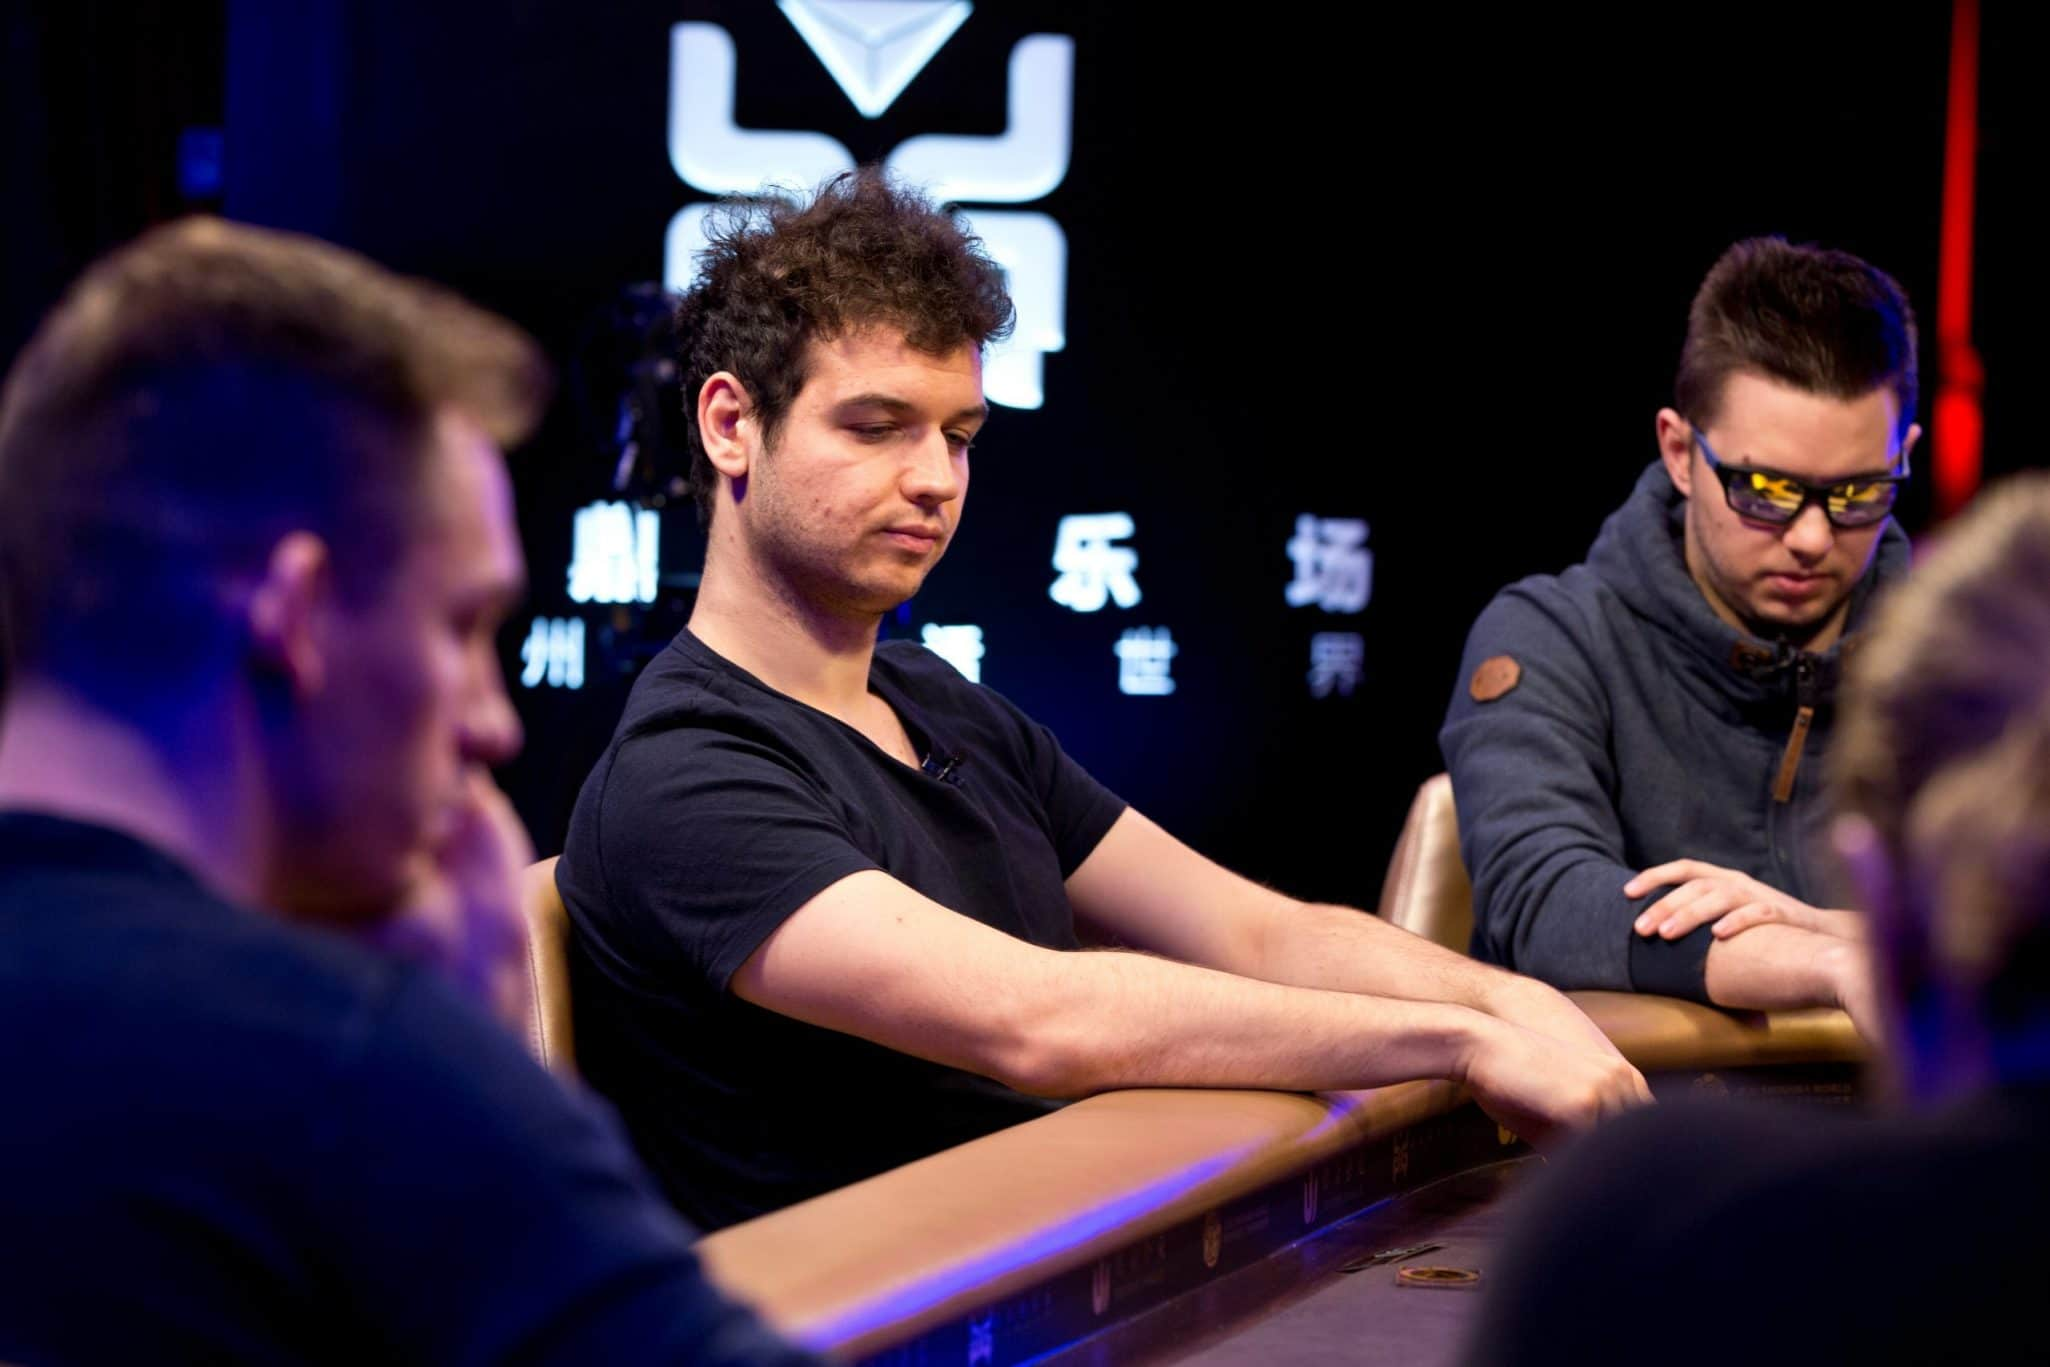 Michael Addamo Wins $100k at WPT World Online Championships; Charlie Godwin Turns $109 into $620k Coming Third